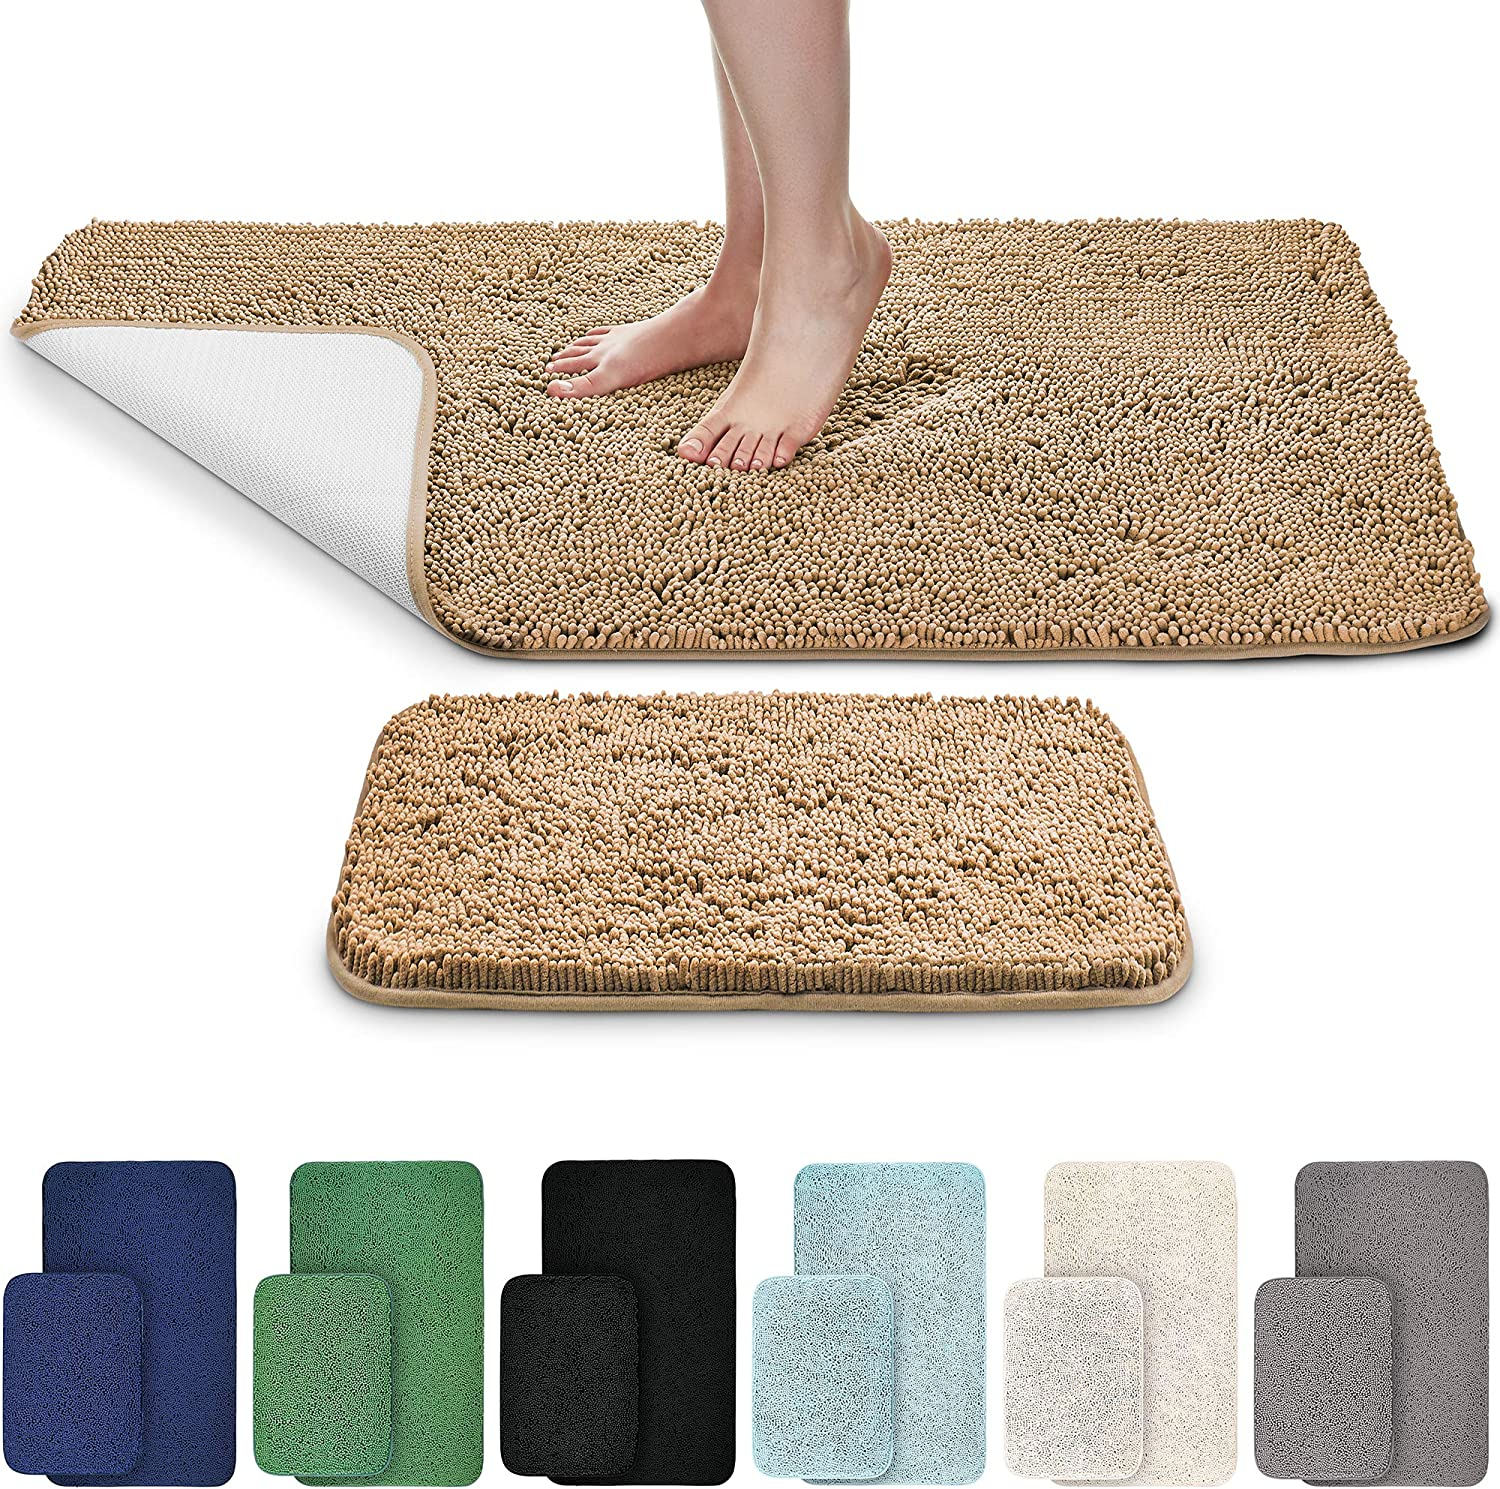 "EdenHomes Chenille Bath Mats for Bathroom 24"" x 17"" + 44"" x 26"" (Set of 2) - Extra Soft Non-Slip Fluffy Rug Bathtub Large Shower Mat, Plush Carpet, Super Absorbent, Quick Dry, Machine Washable (Beige)"